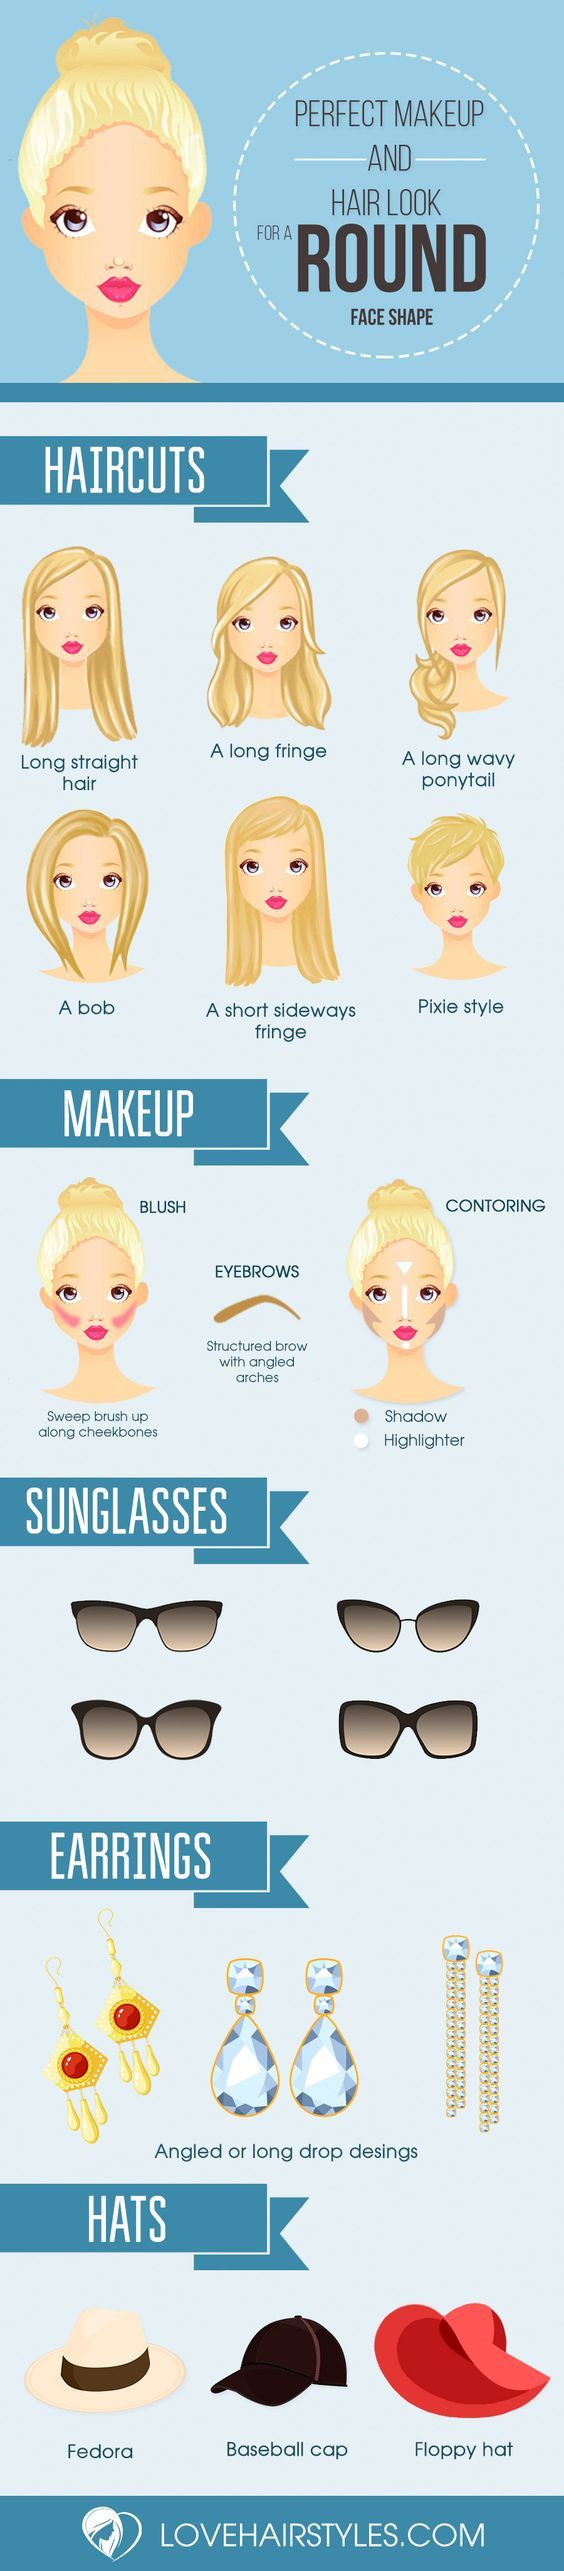 Best Hairstyles For Round Faces Easy hairstyles Pinterest